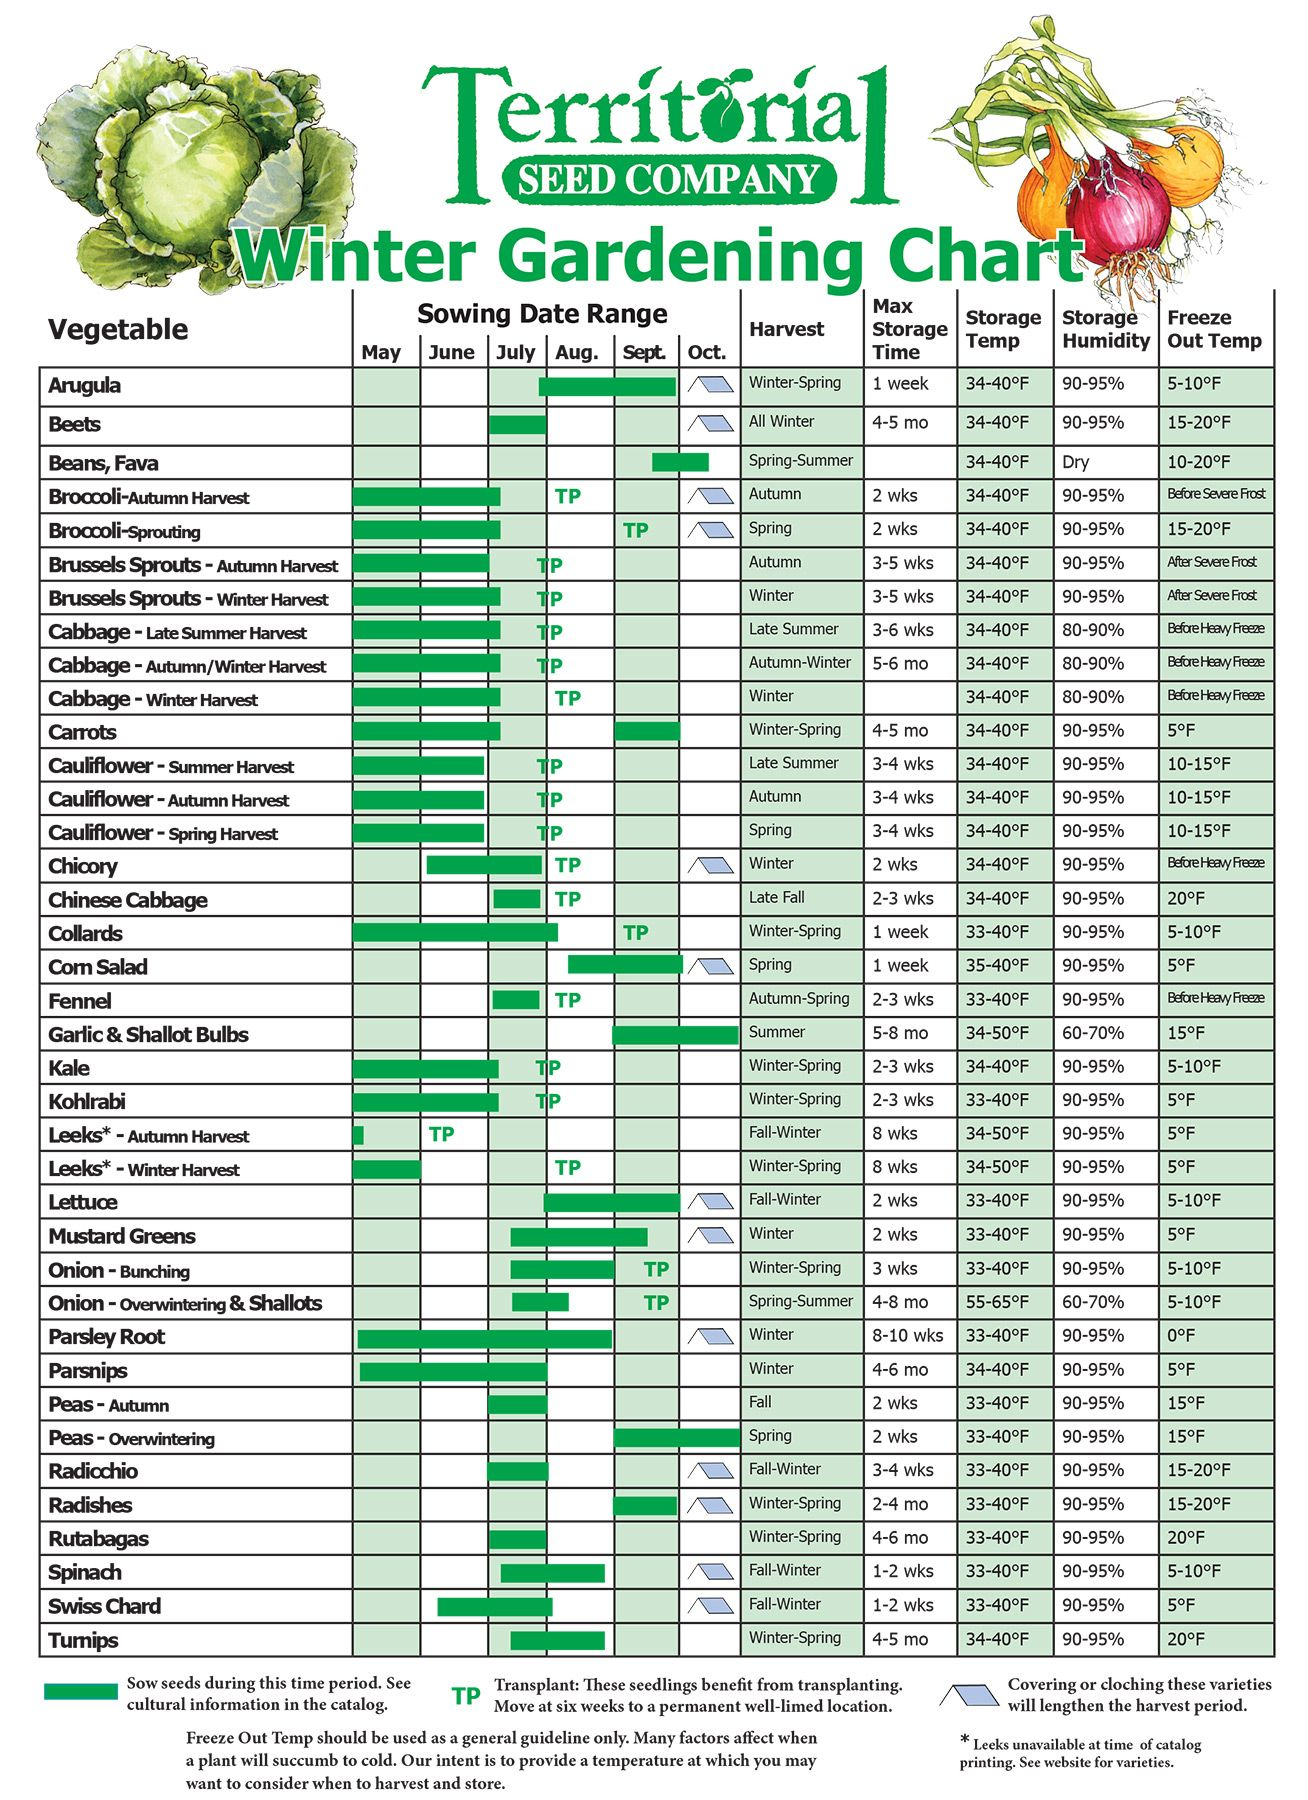 Fall  amp winter growing guides planting chart from territorial seed company http also pin by evelyn vincent on garden charts autumn rh pinterest